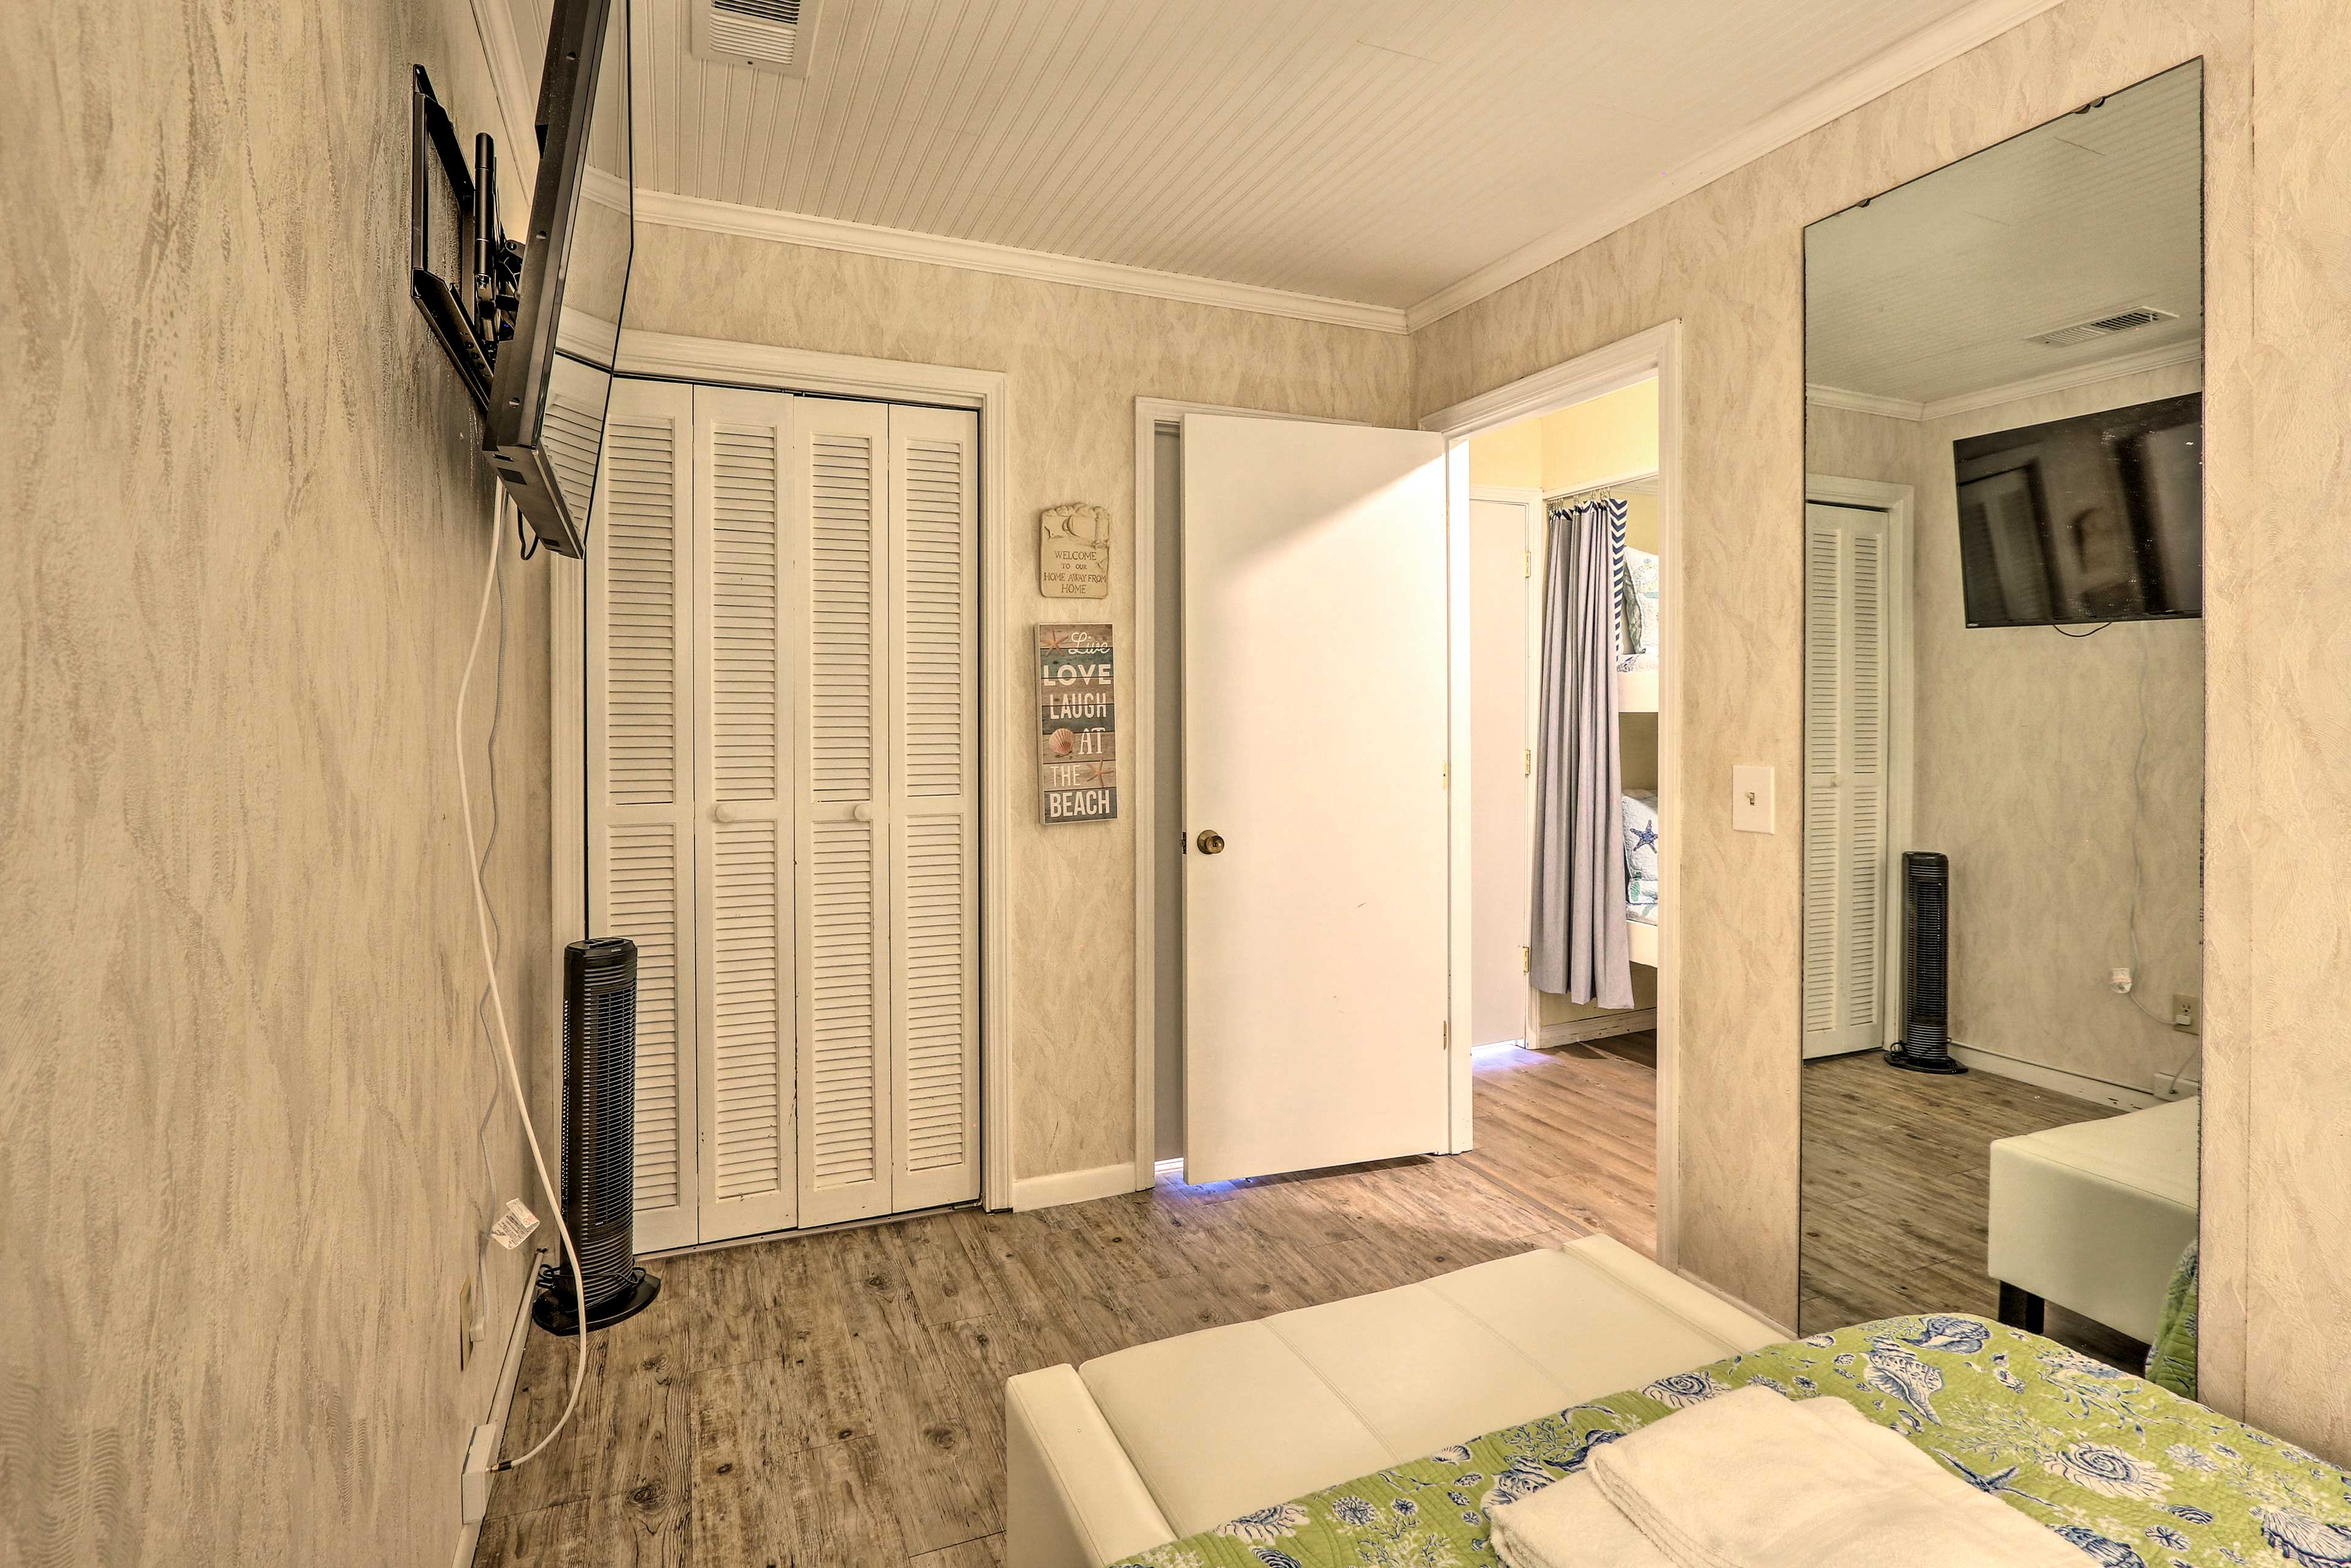 The room includes a flat-screen TV.